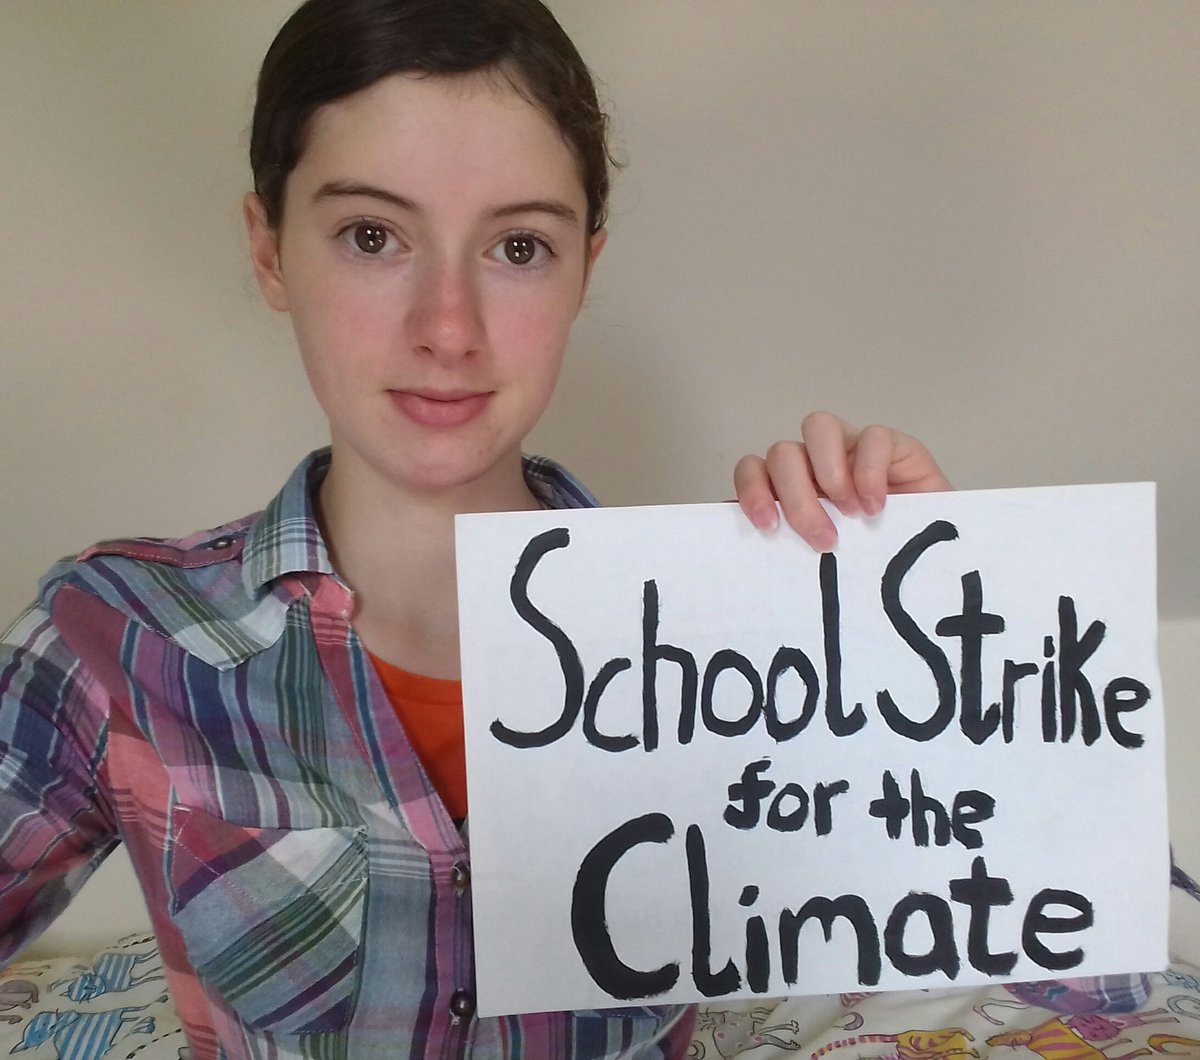 Digital strike for the climate week 76. #climatestrikeonline #fridaysforfuture https://t.co/jXr2hv3ahX